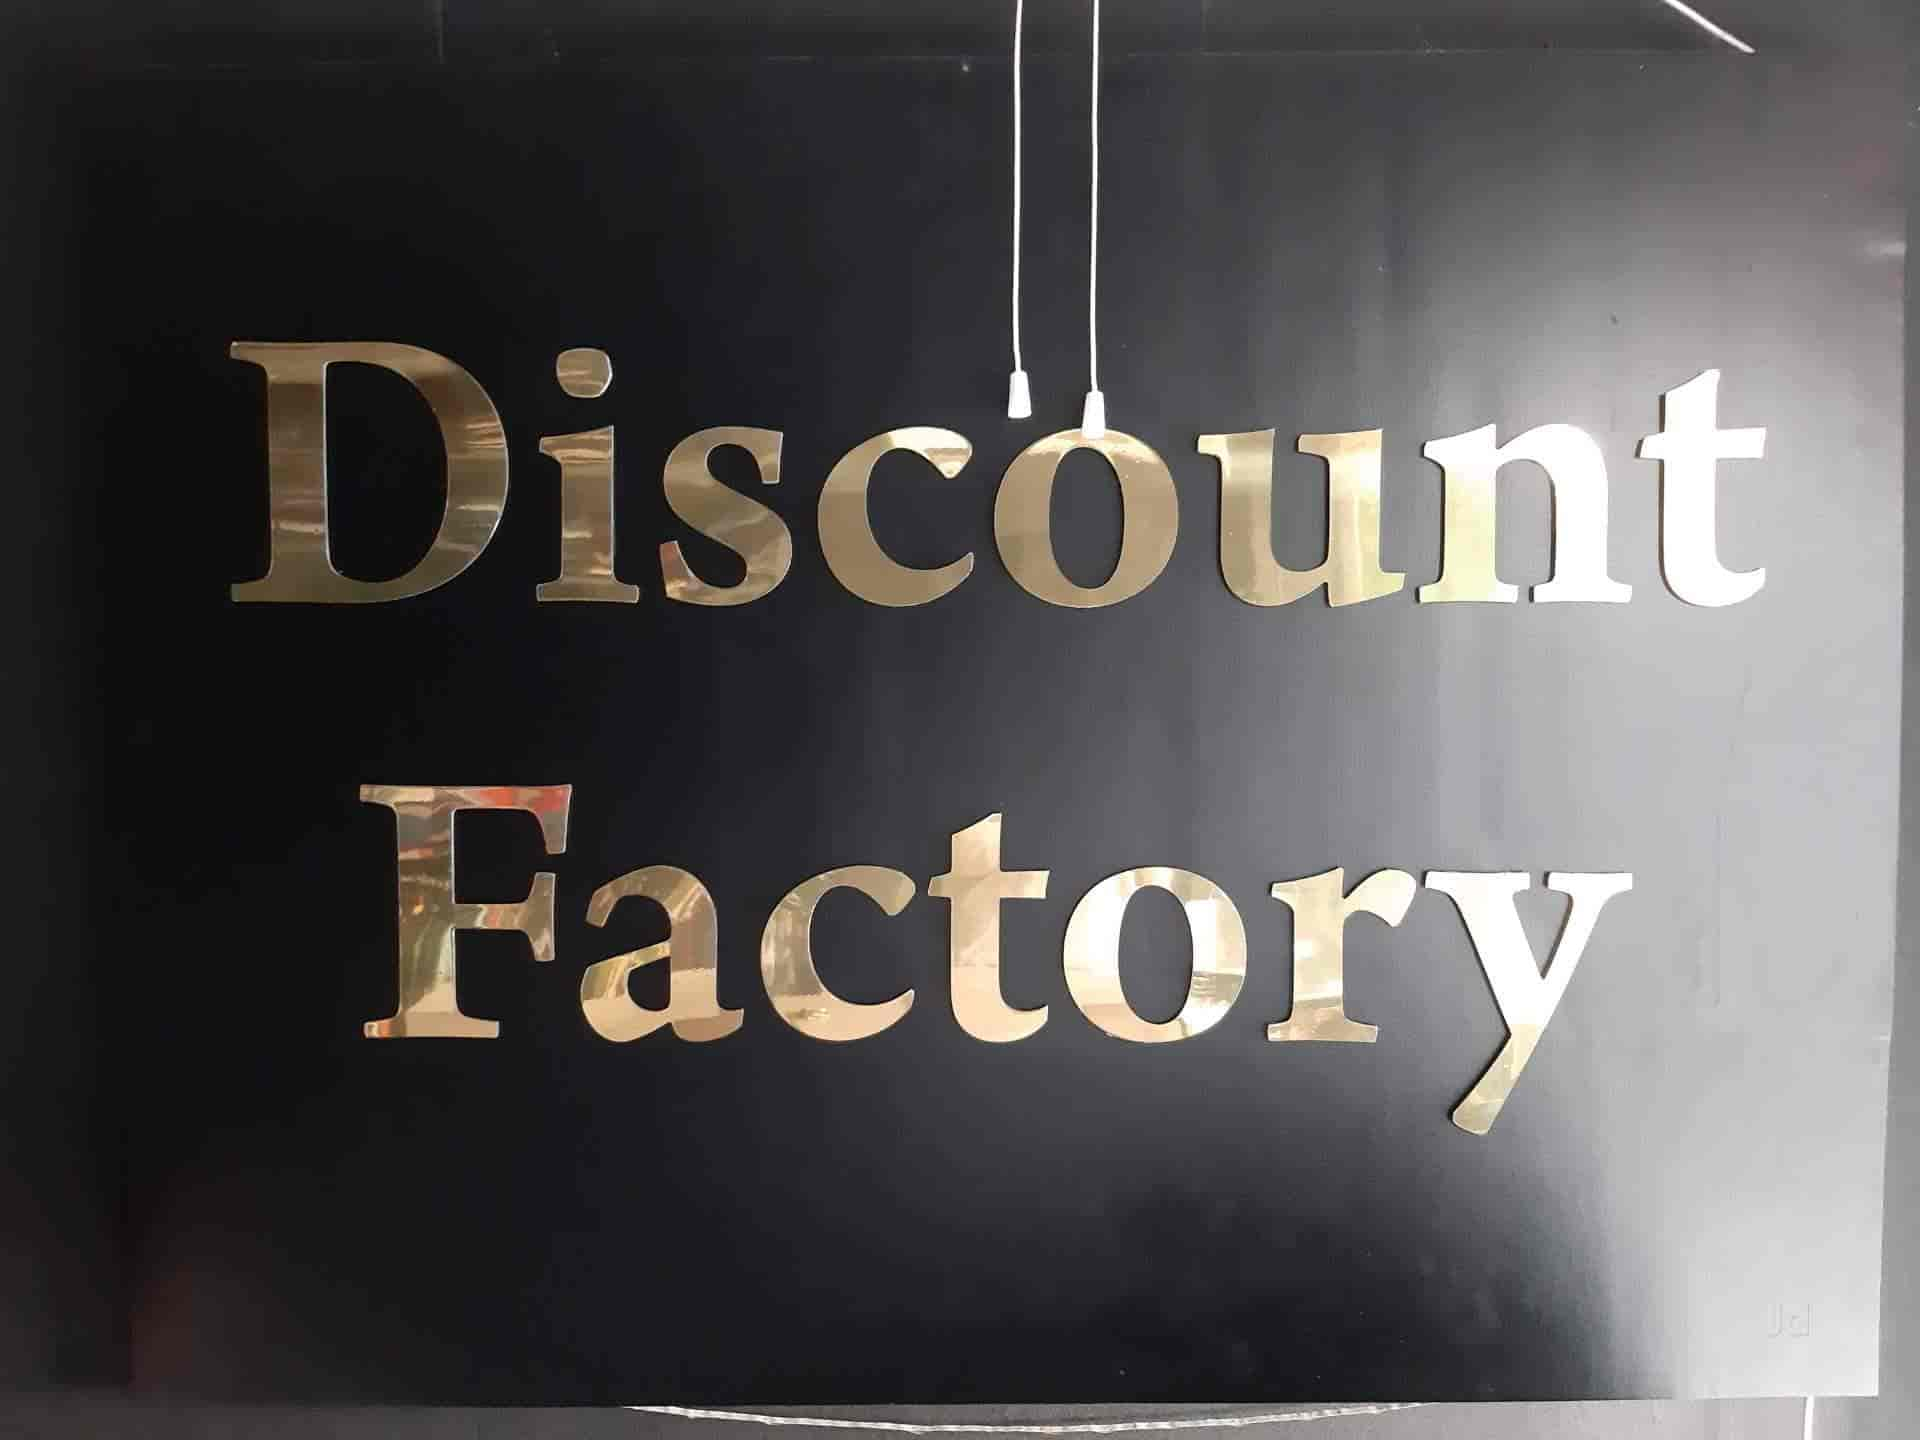 Discount Factory, Mansarovar - Men Readymade Garment